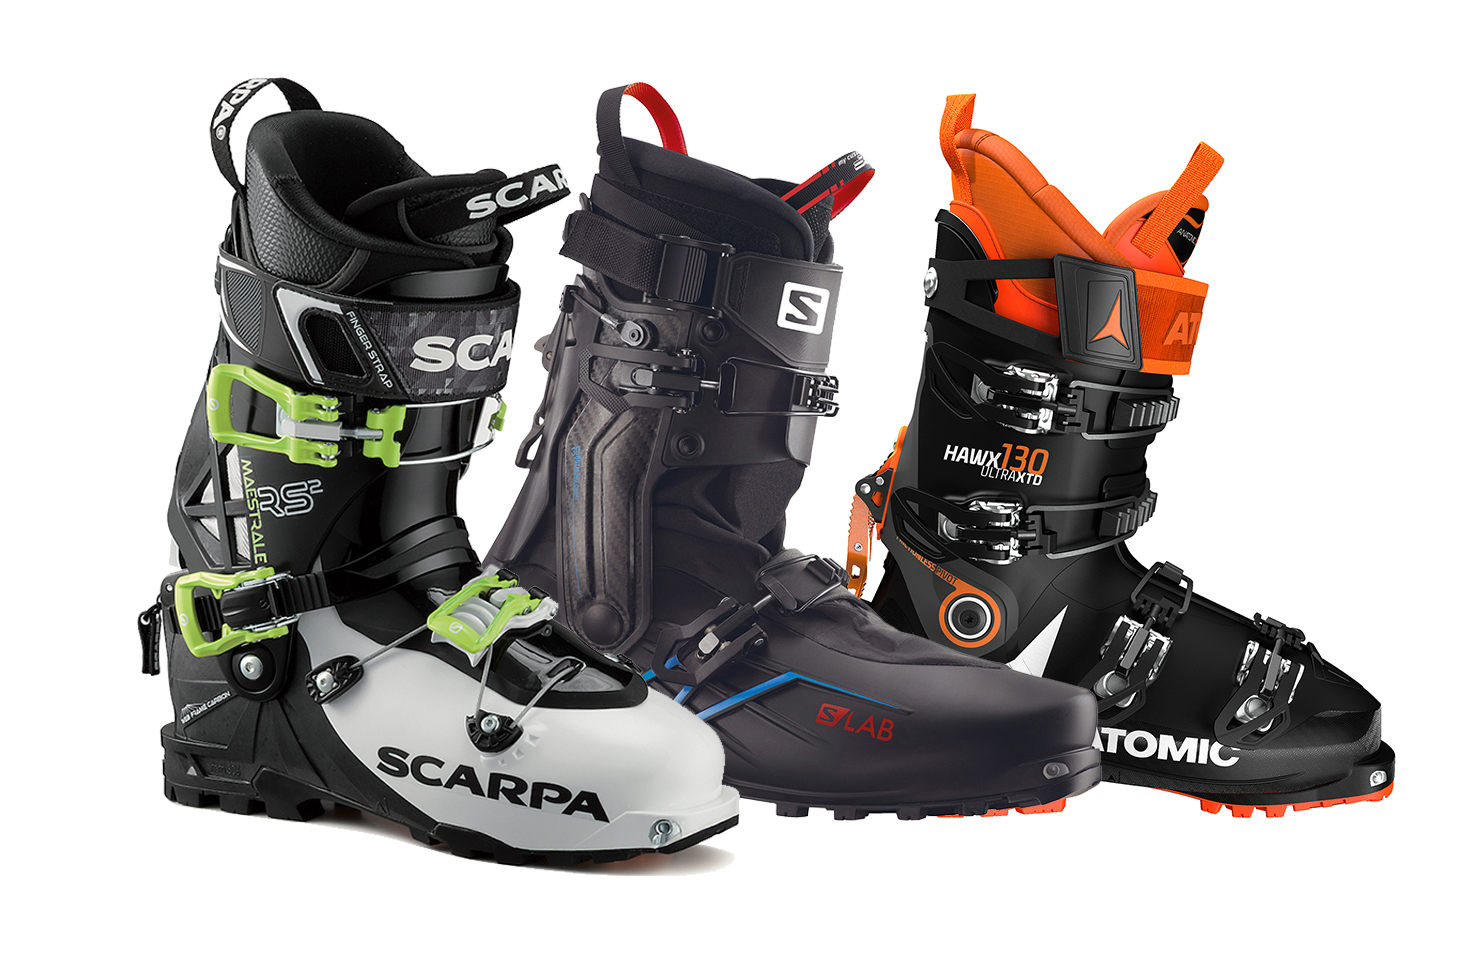 Three Top New Ski Touring Boots For 2017-18  38c5bd8e1